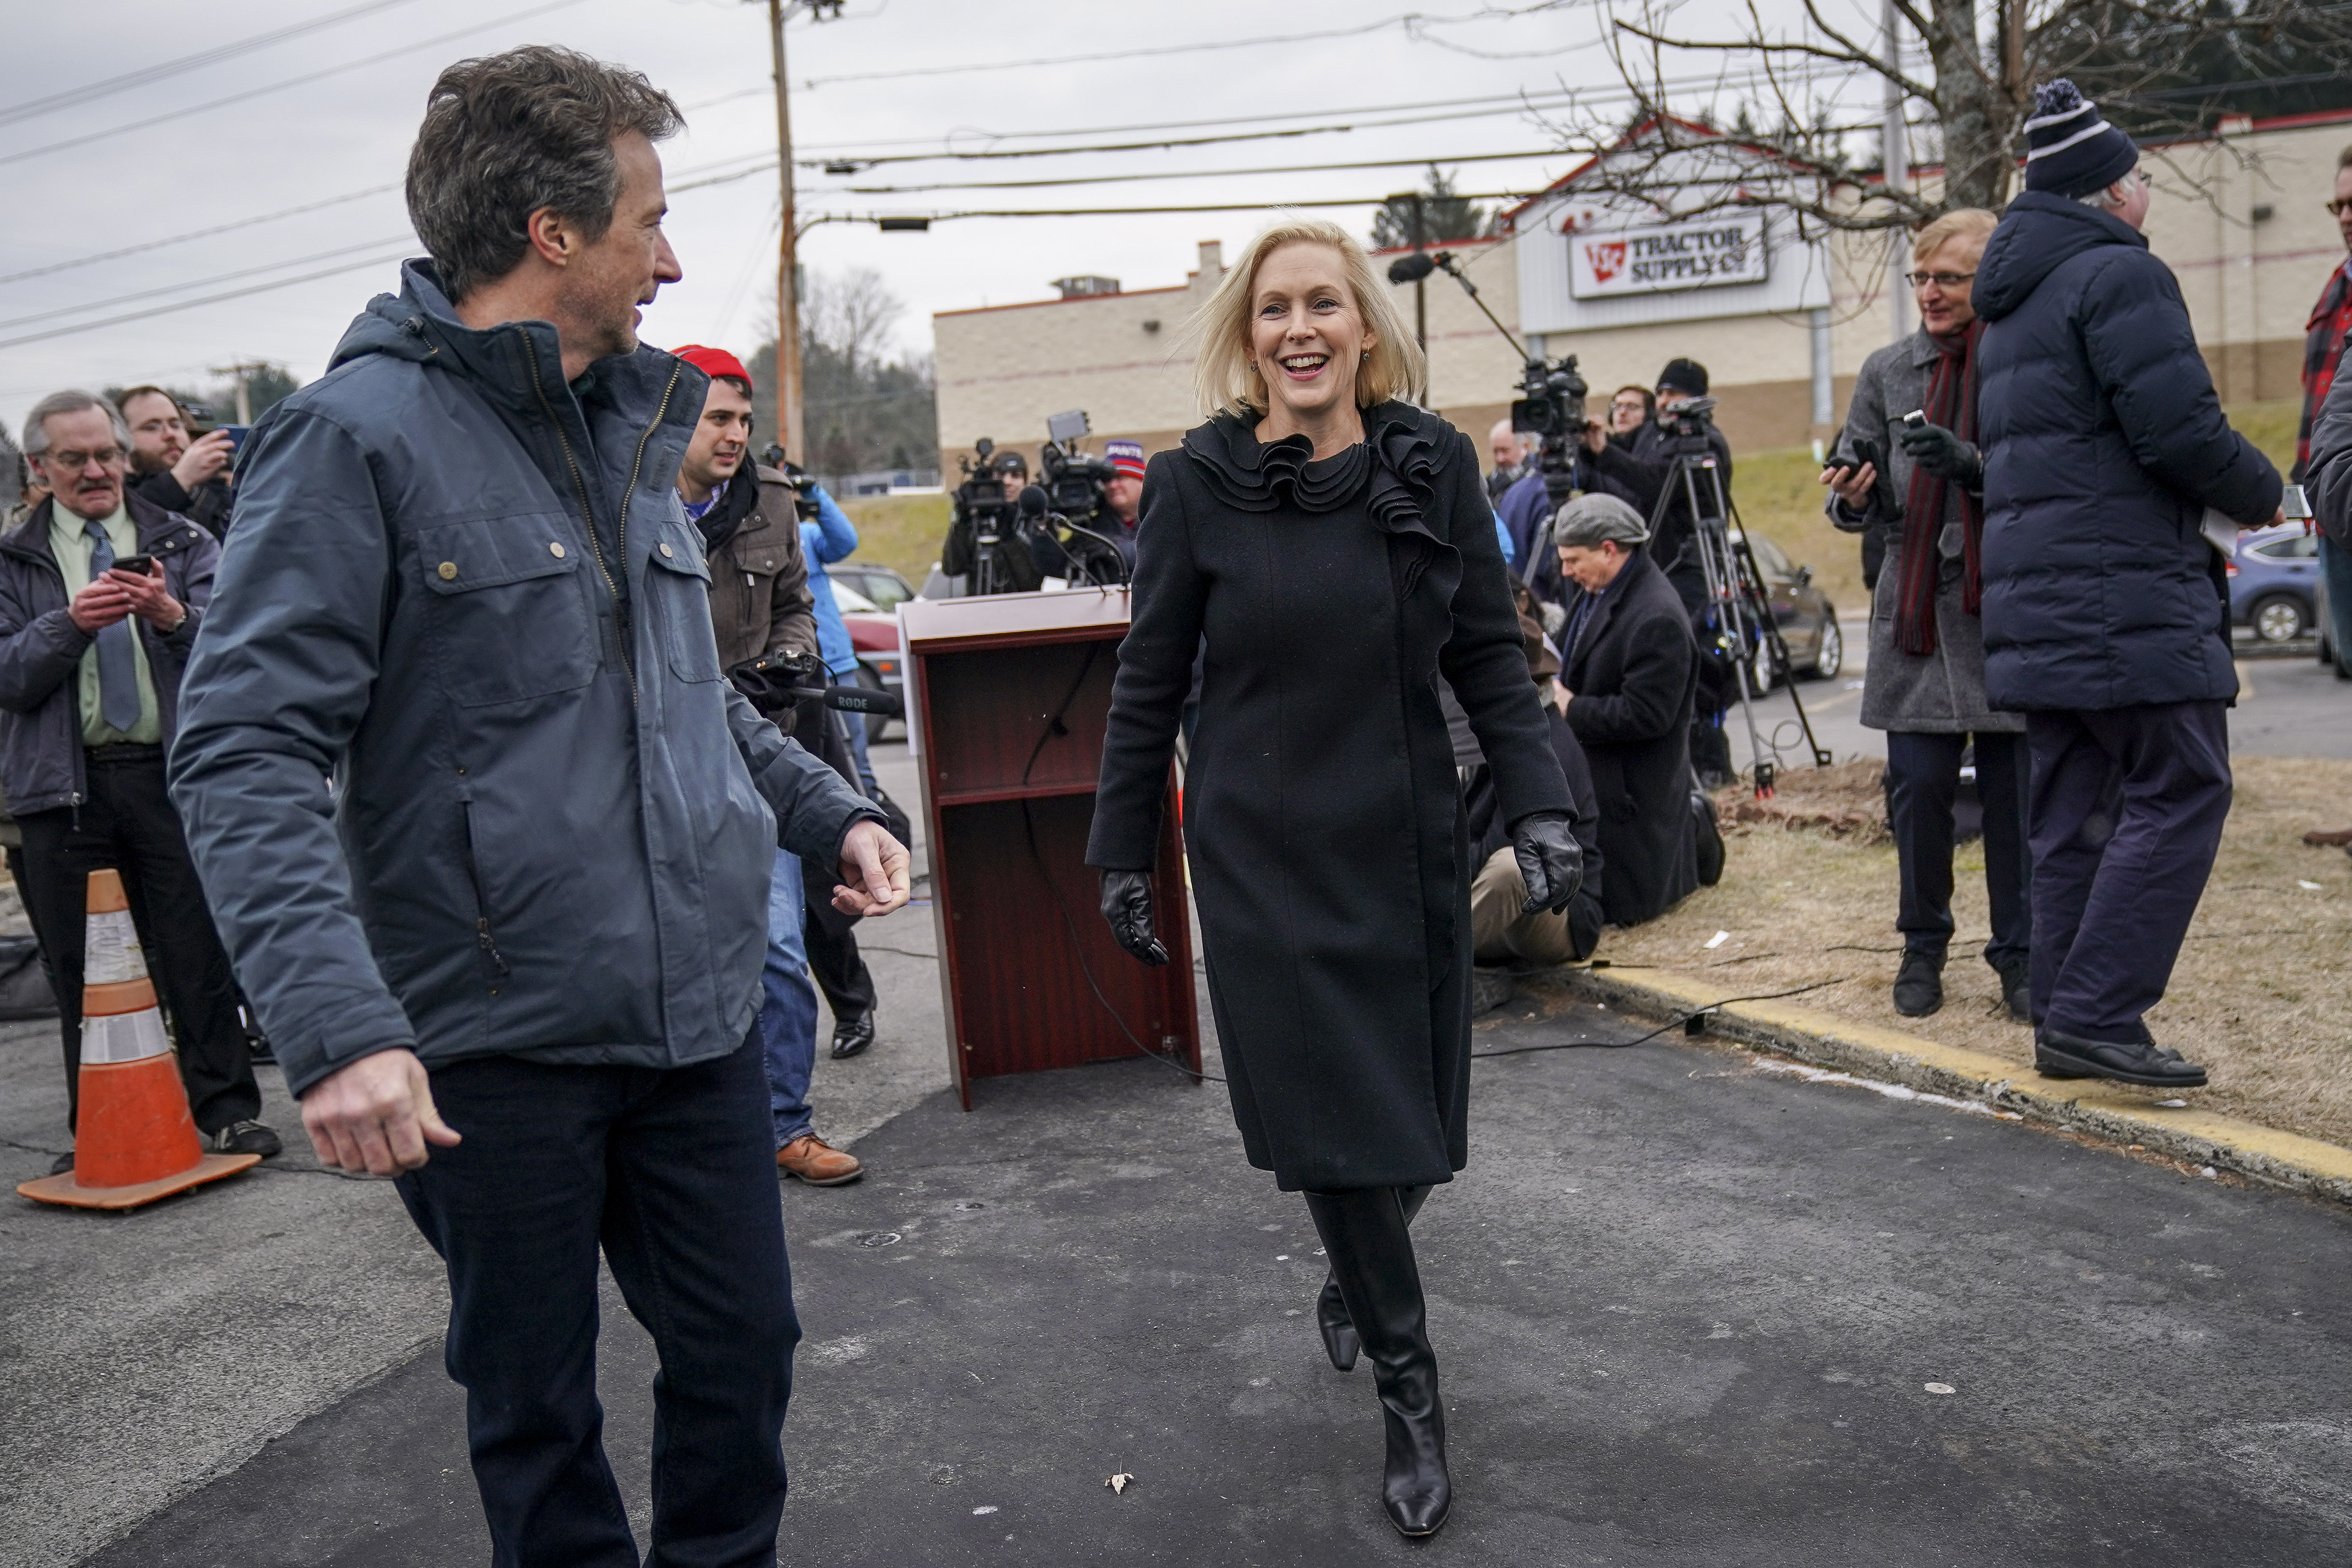 Sen. Kirsten Gillibrand and her husband Jonathan Gillibrand walk together after a media availability announcing she will run for president in 2020 (Drew Angerer/Getty Images)